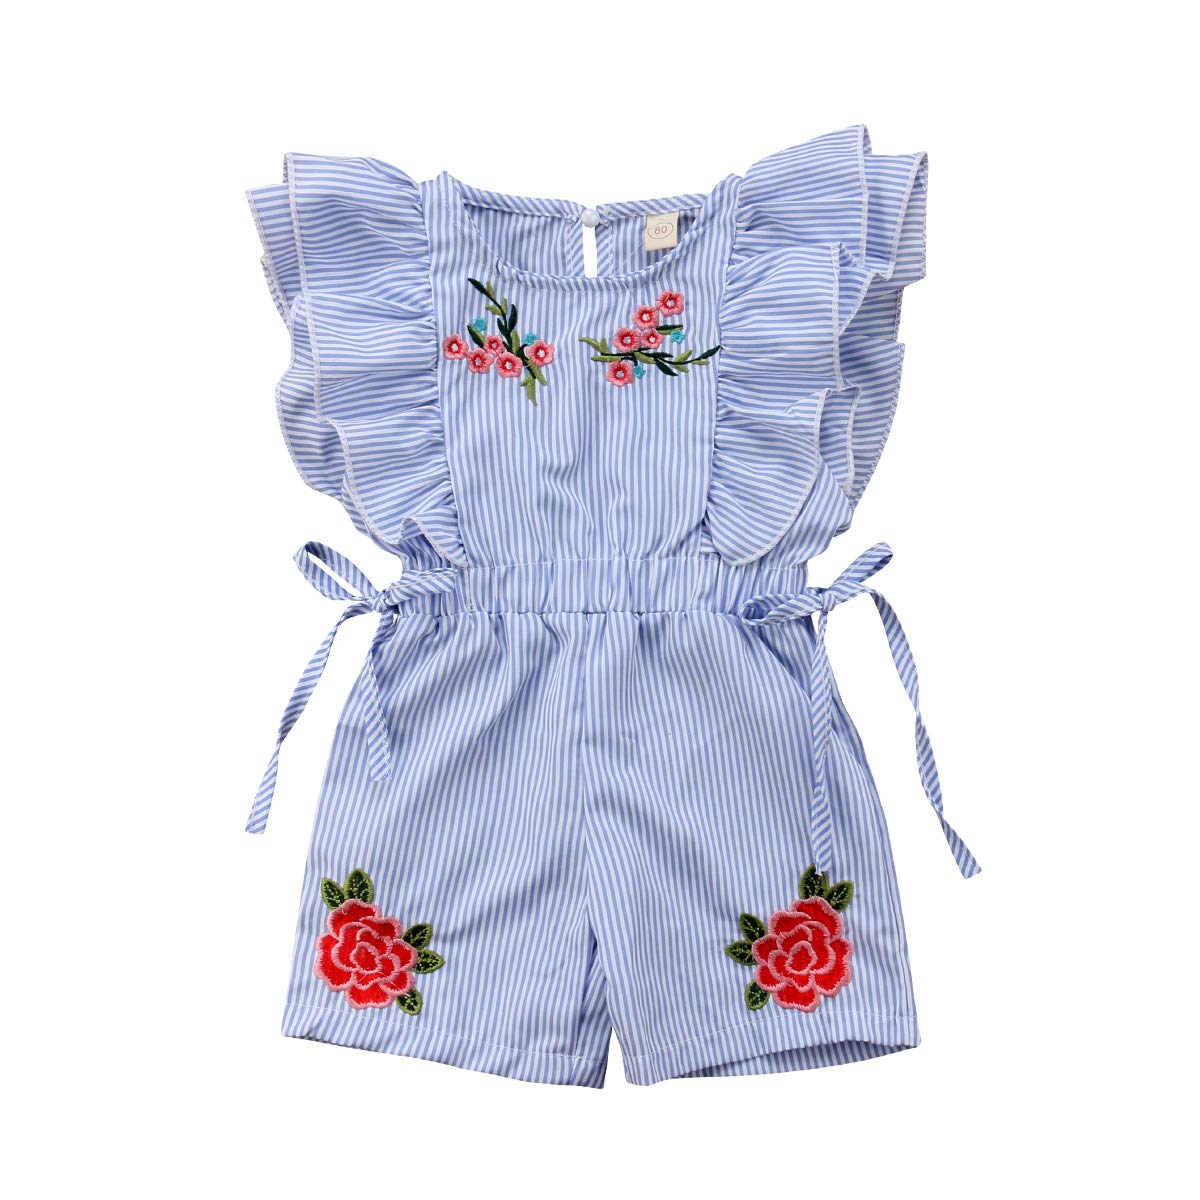 citgeett Toddler Kids Baby Girl Button Sleeveless Ruffle Playsuit Jumpsuit Solid Color Bow Romper Summer Clothes (Stripe, 2-3 Years) by citgeett